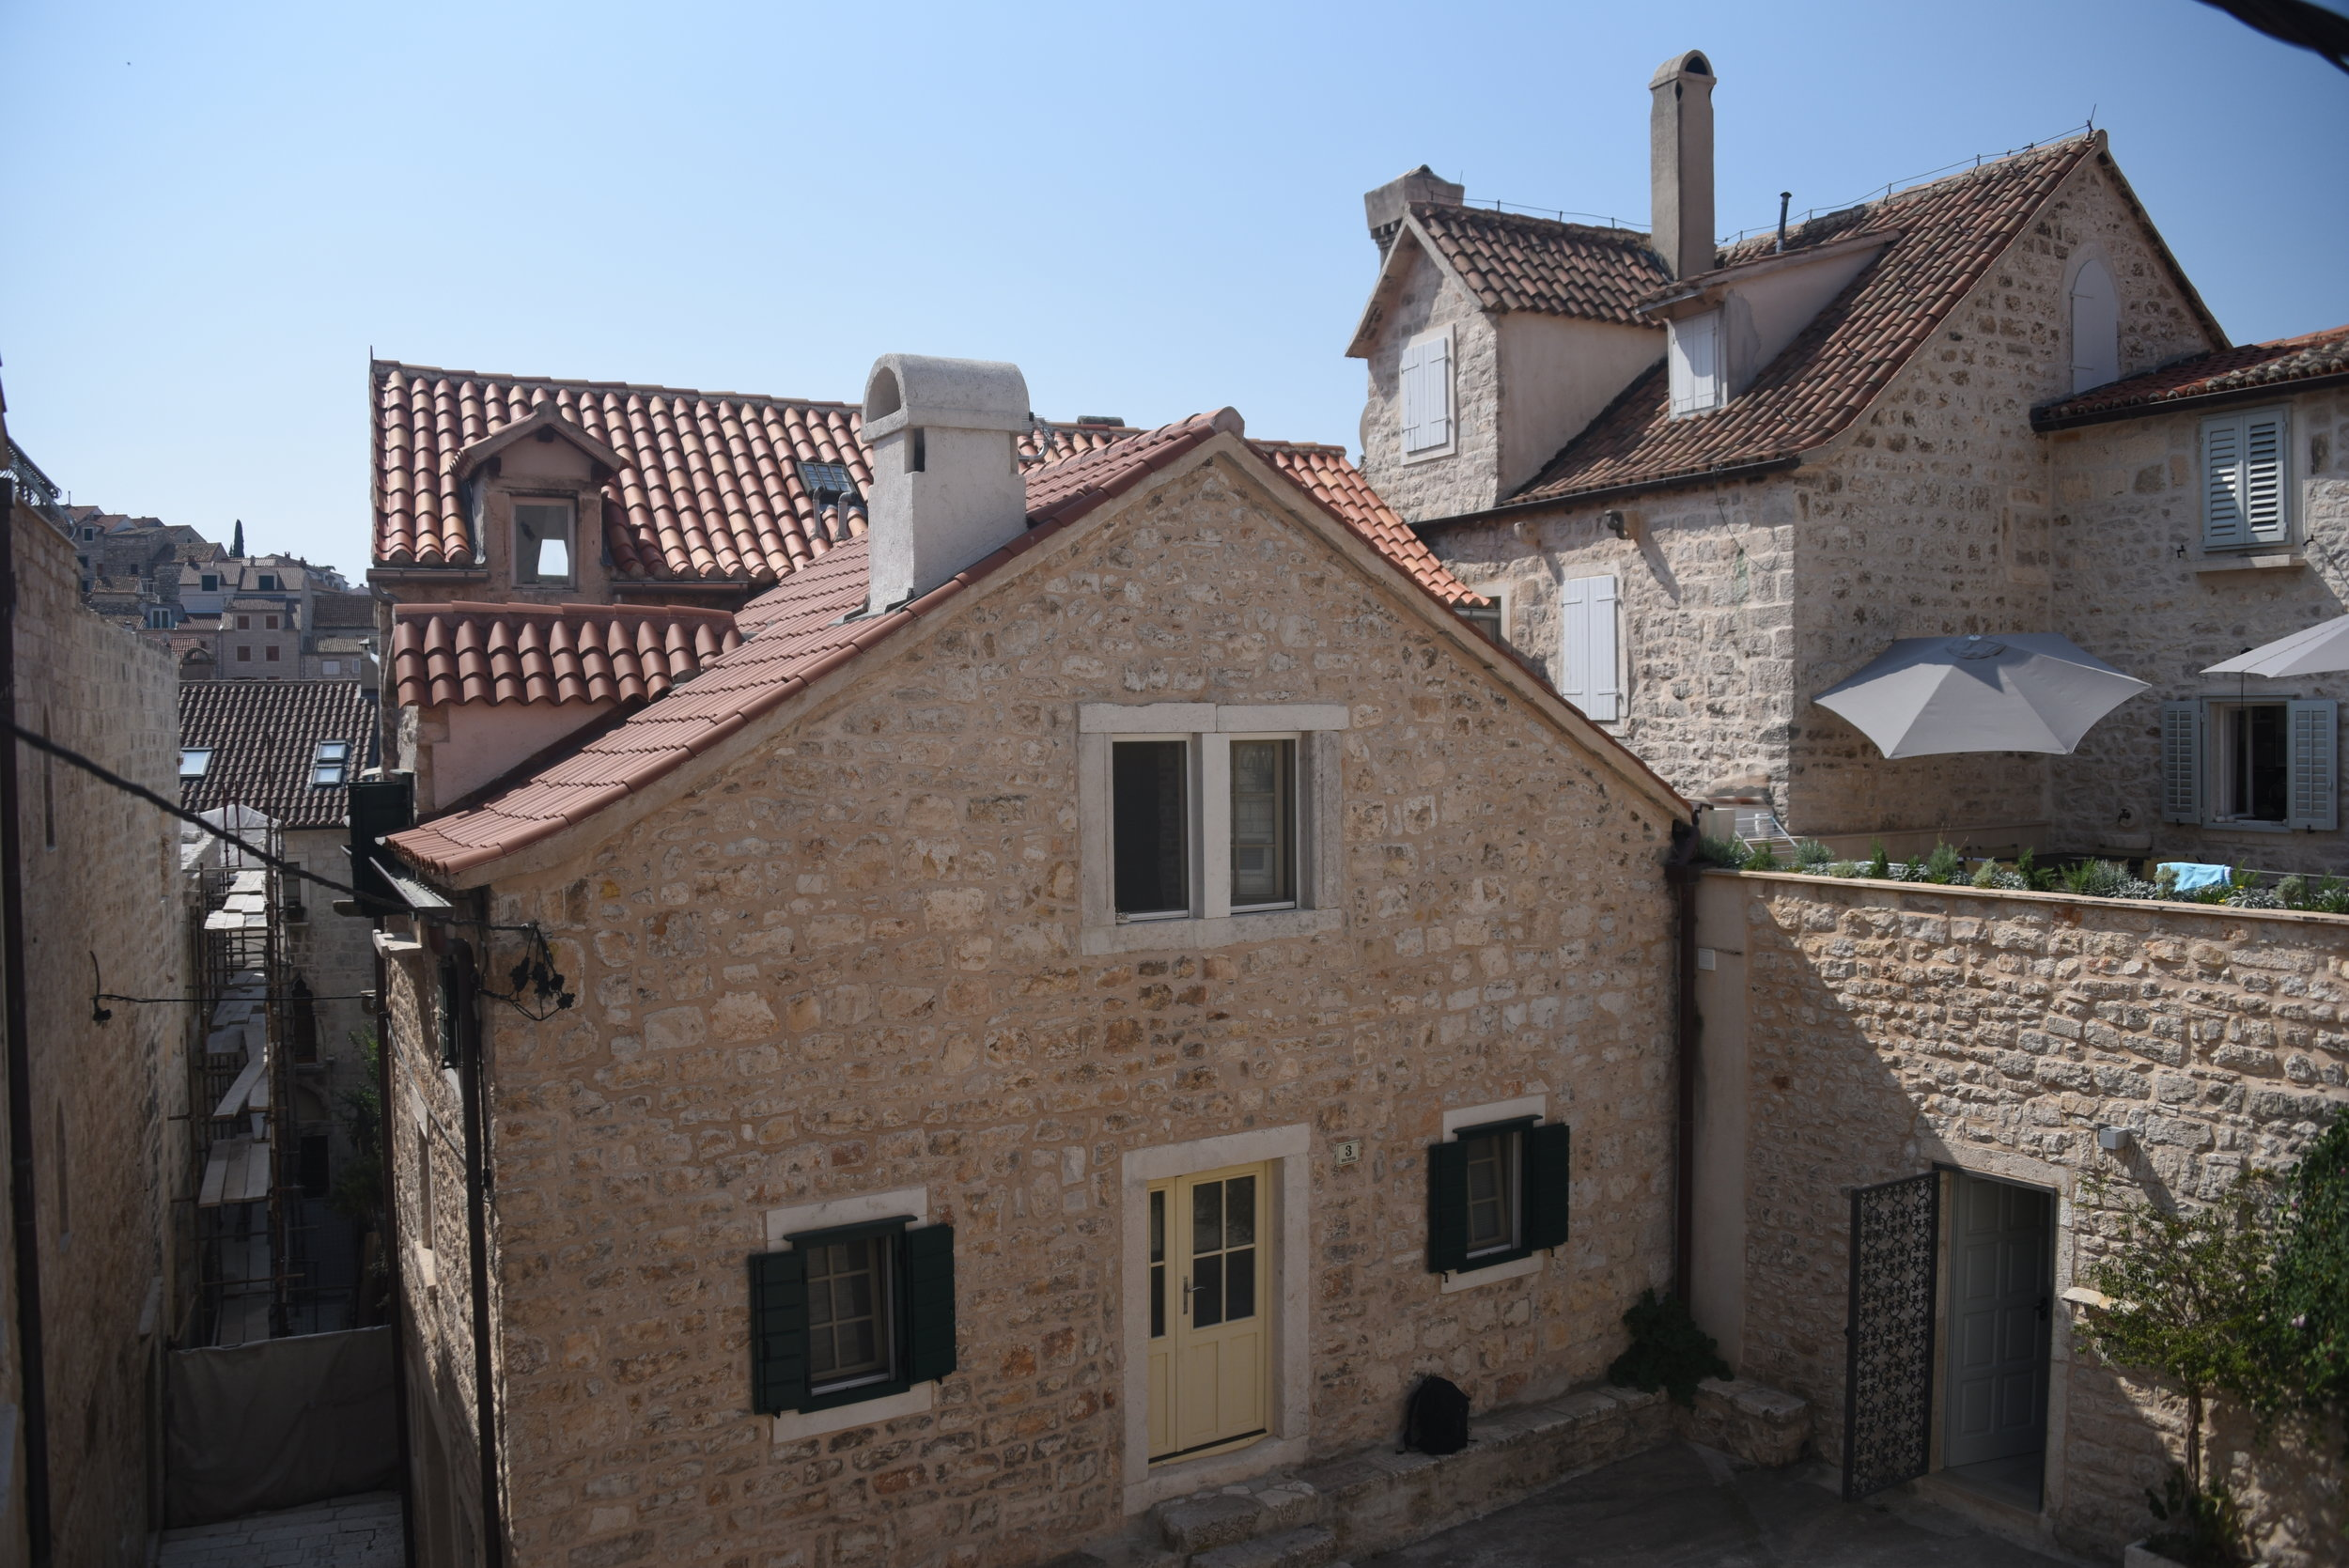 The view from my cozy apartment in a 15th century stone house just above the historic town of Hvar.  The host family has lived here for generations.  Amazing!